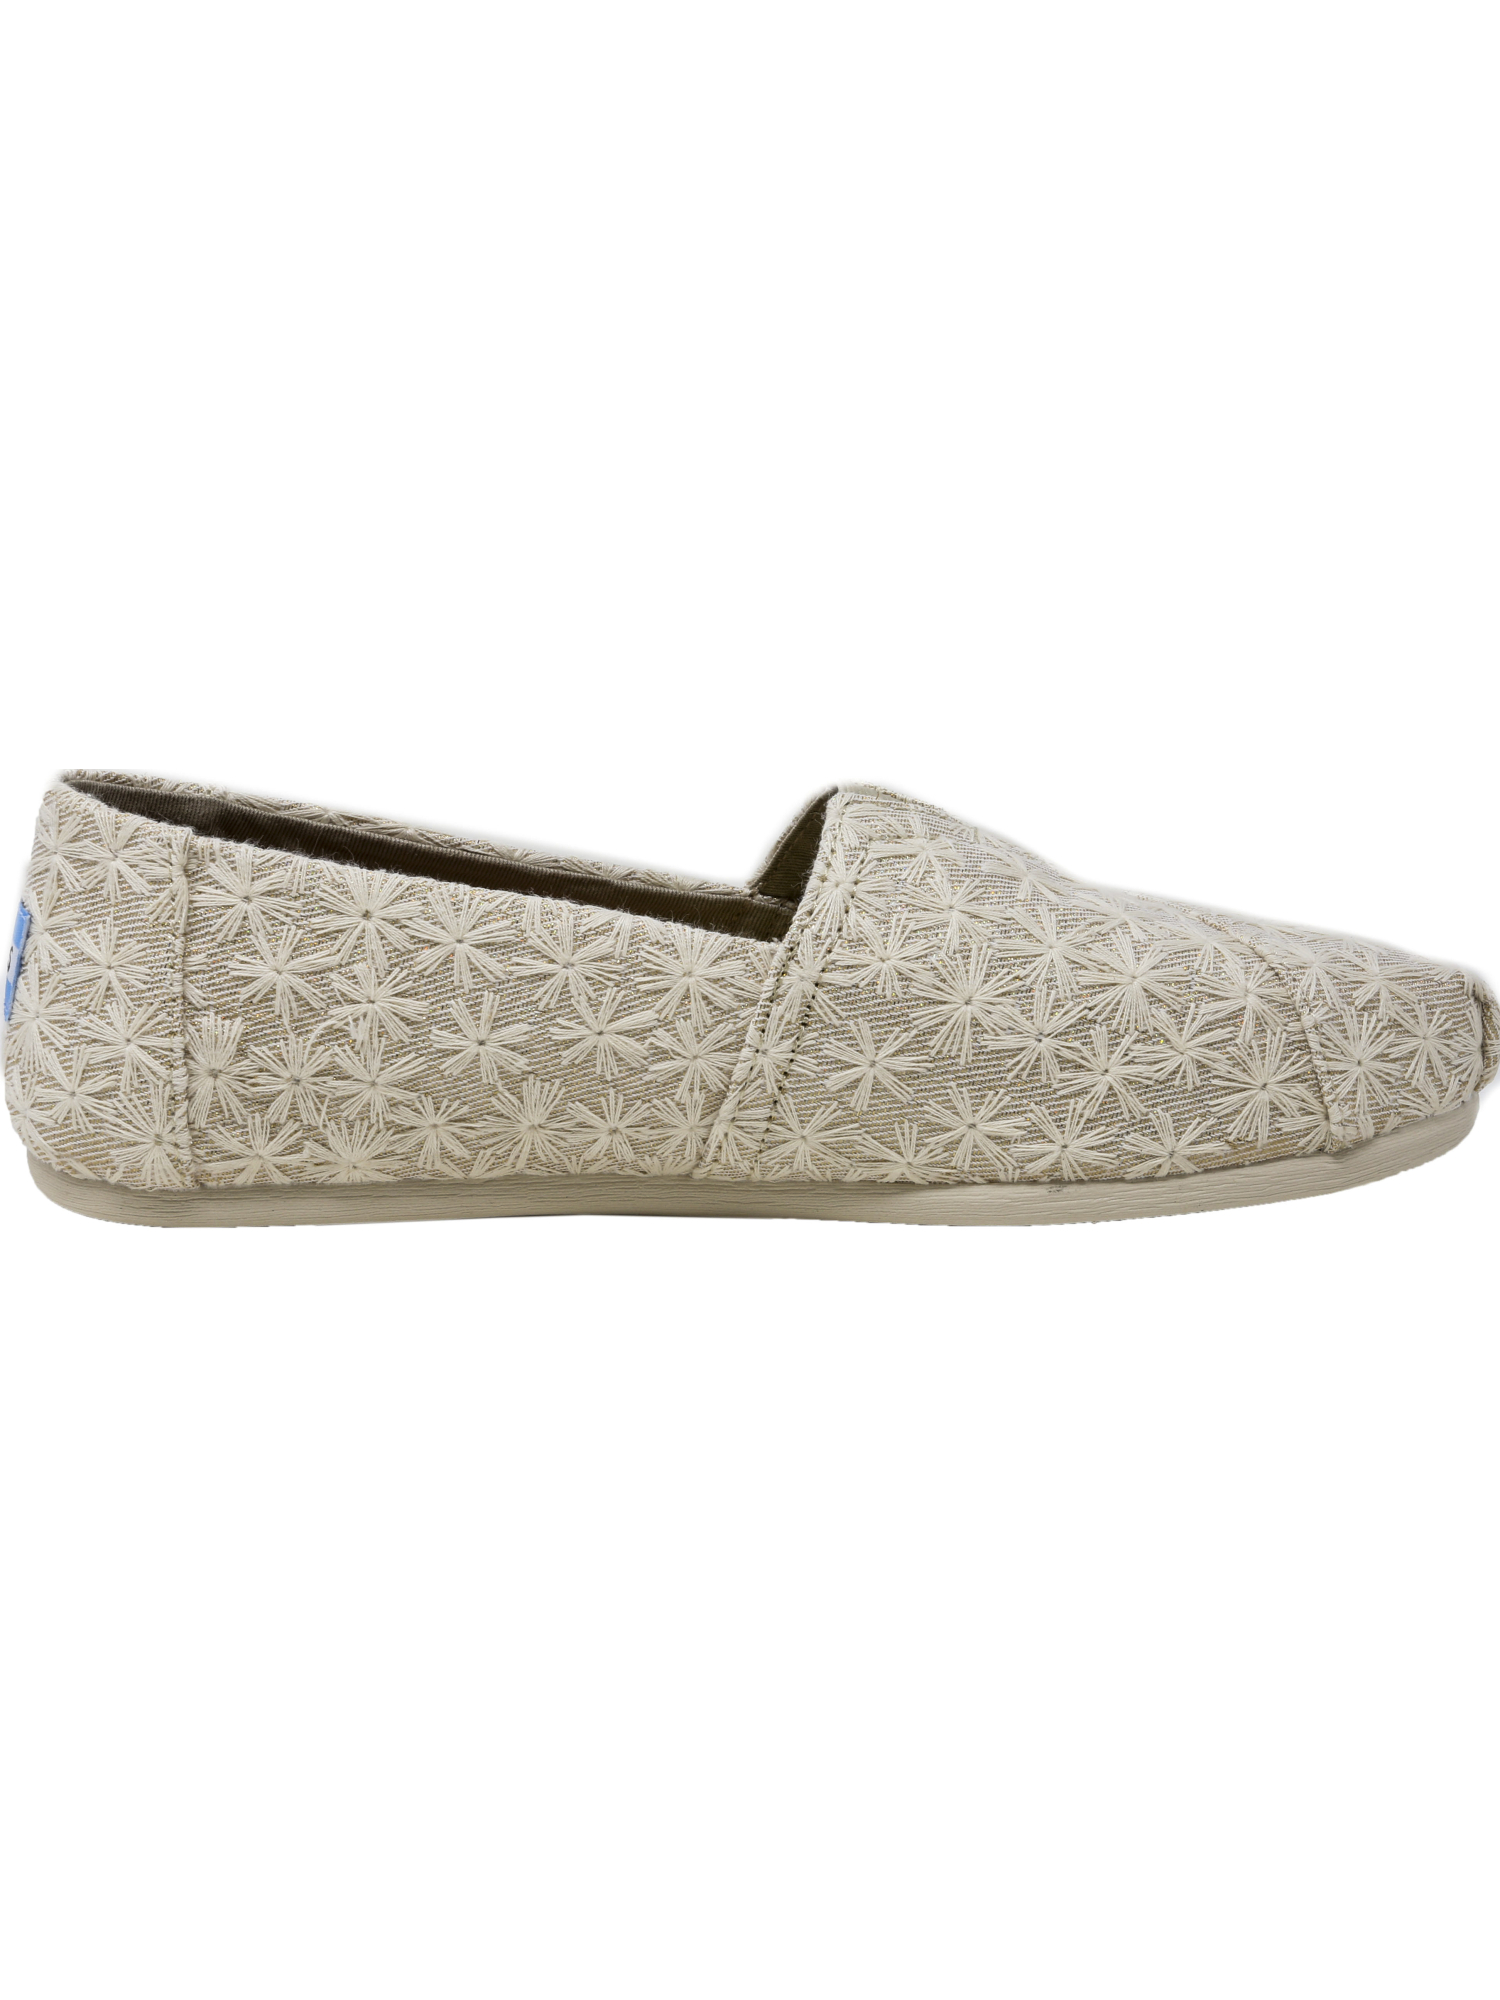 Toms-Women-039-s-Classic-Canvas-Ankle-High-Slip-On-Shoes thumbnail 27